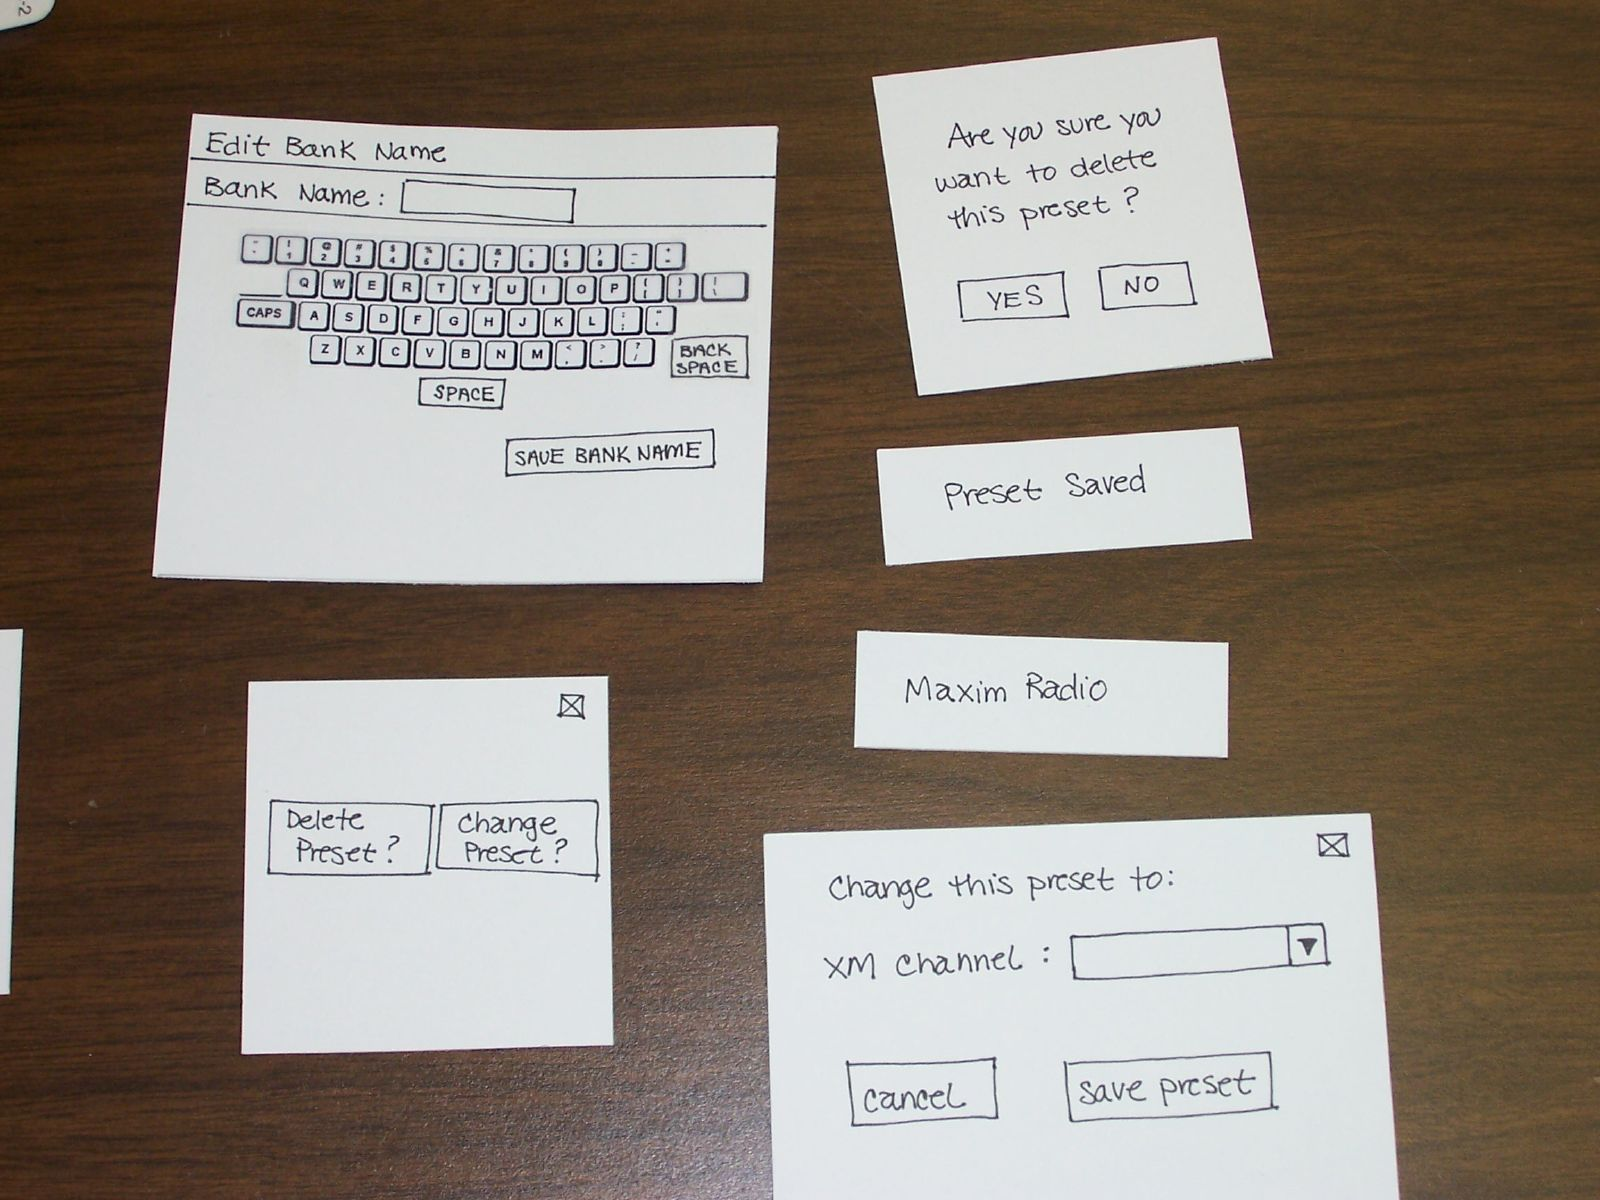 Paper prototype of qwerty keyboard and dialog boxes